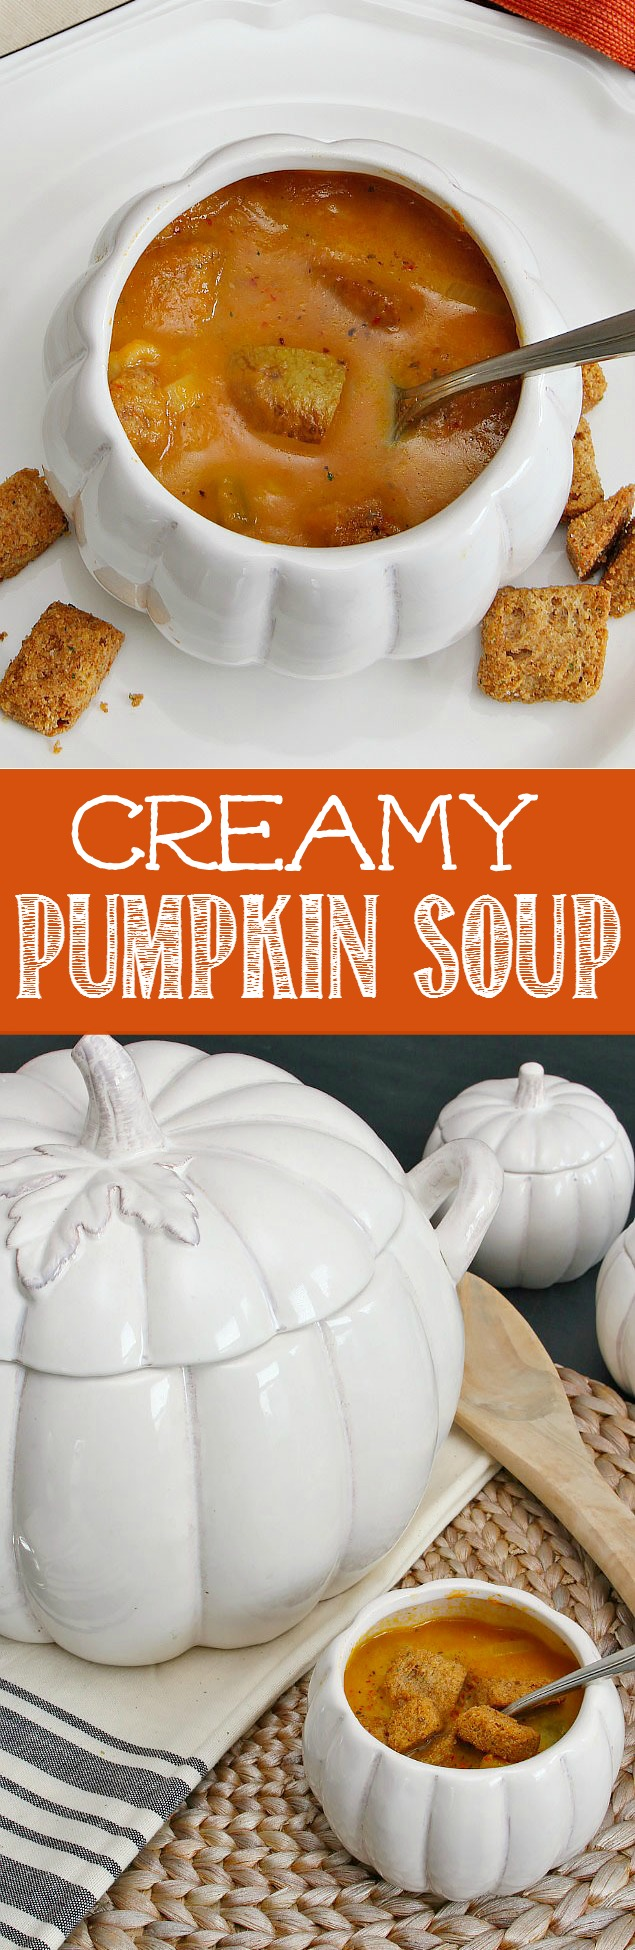 Creamy pumpkin soup recipe. This is so delicious, low in calories, and hearty enough for a meal!